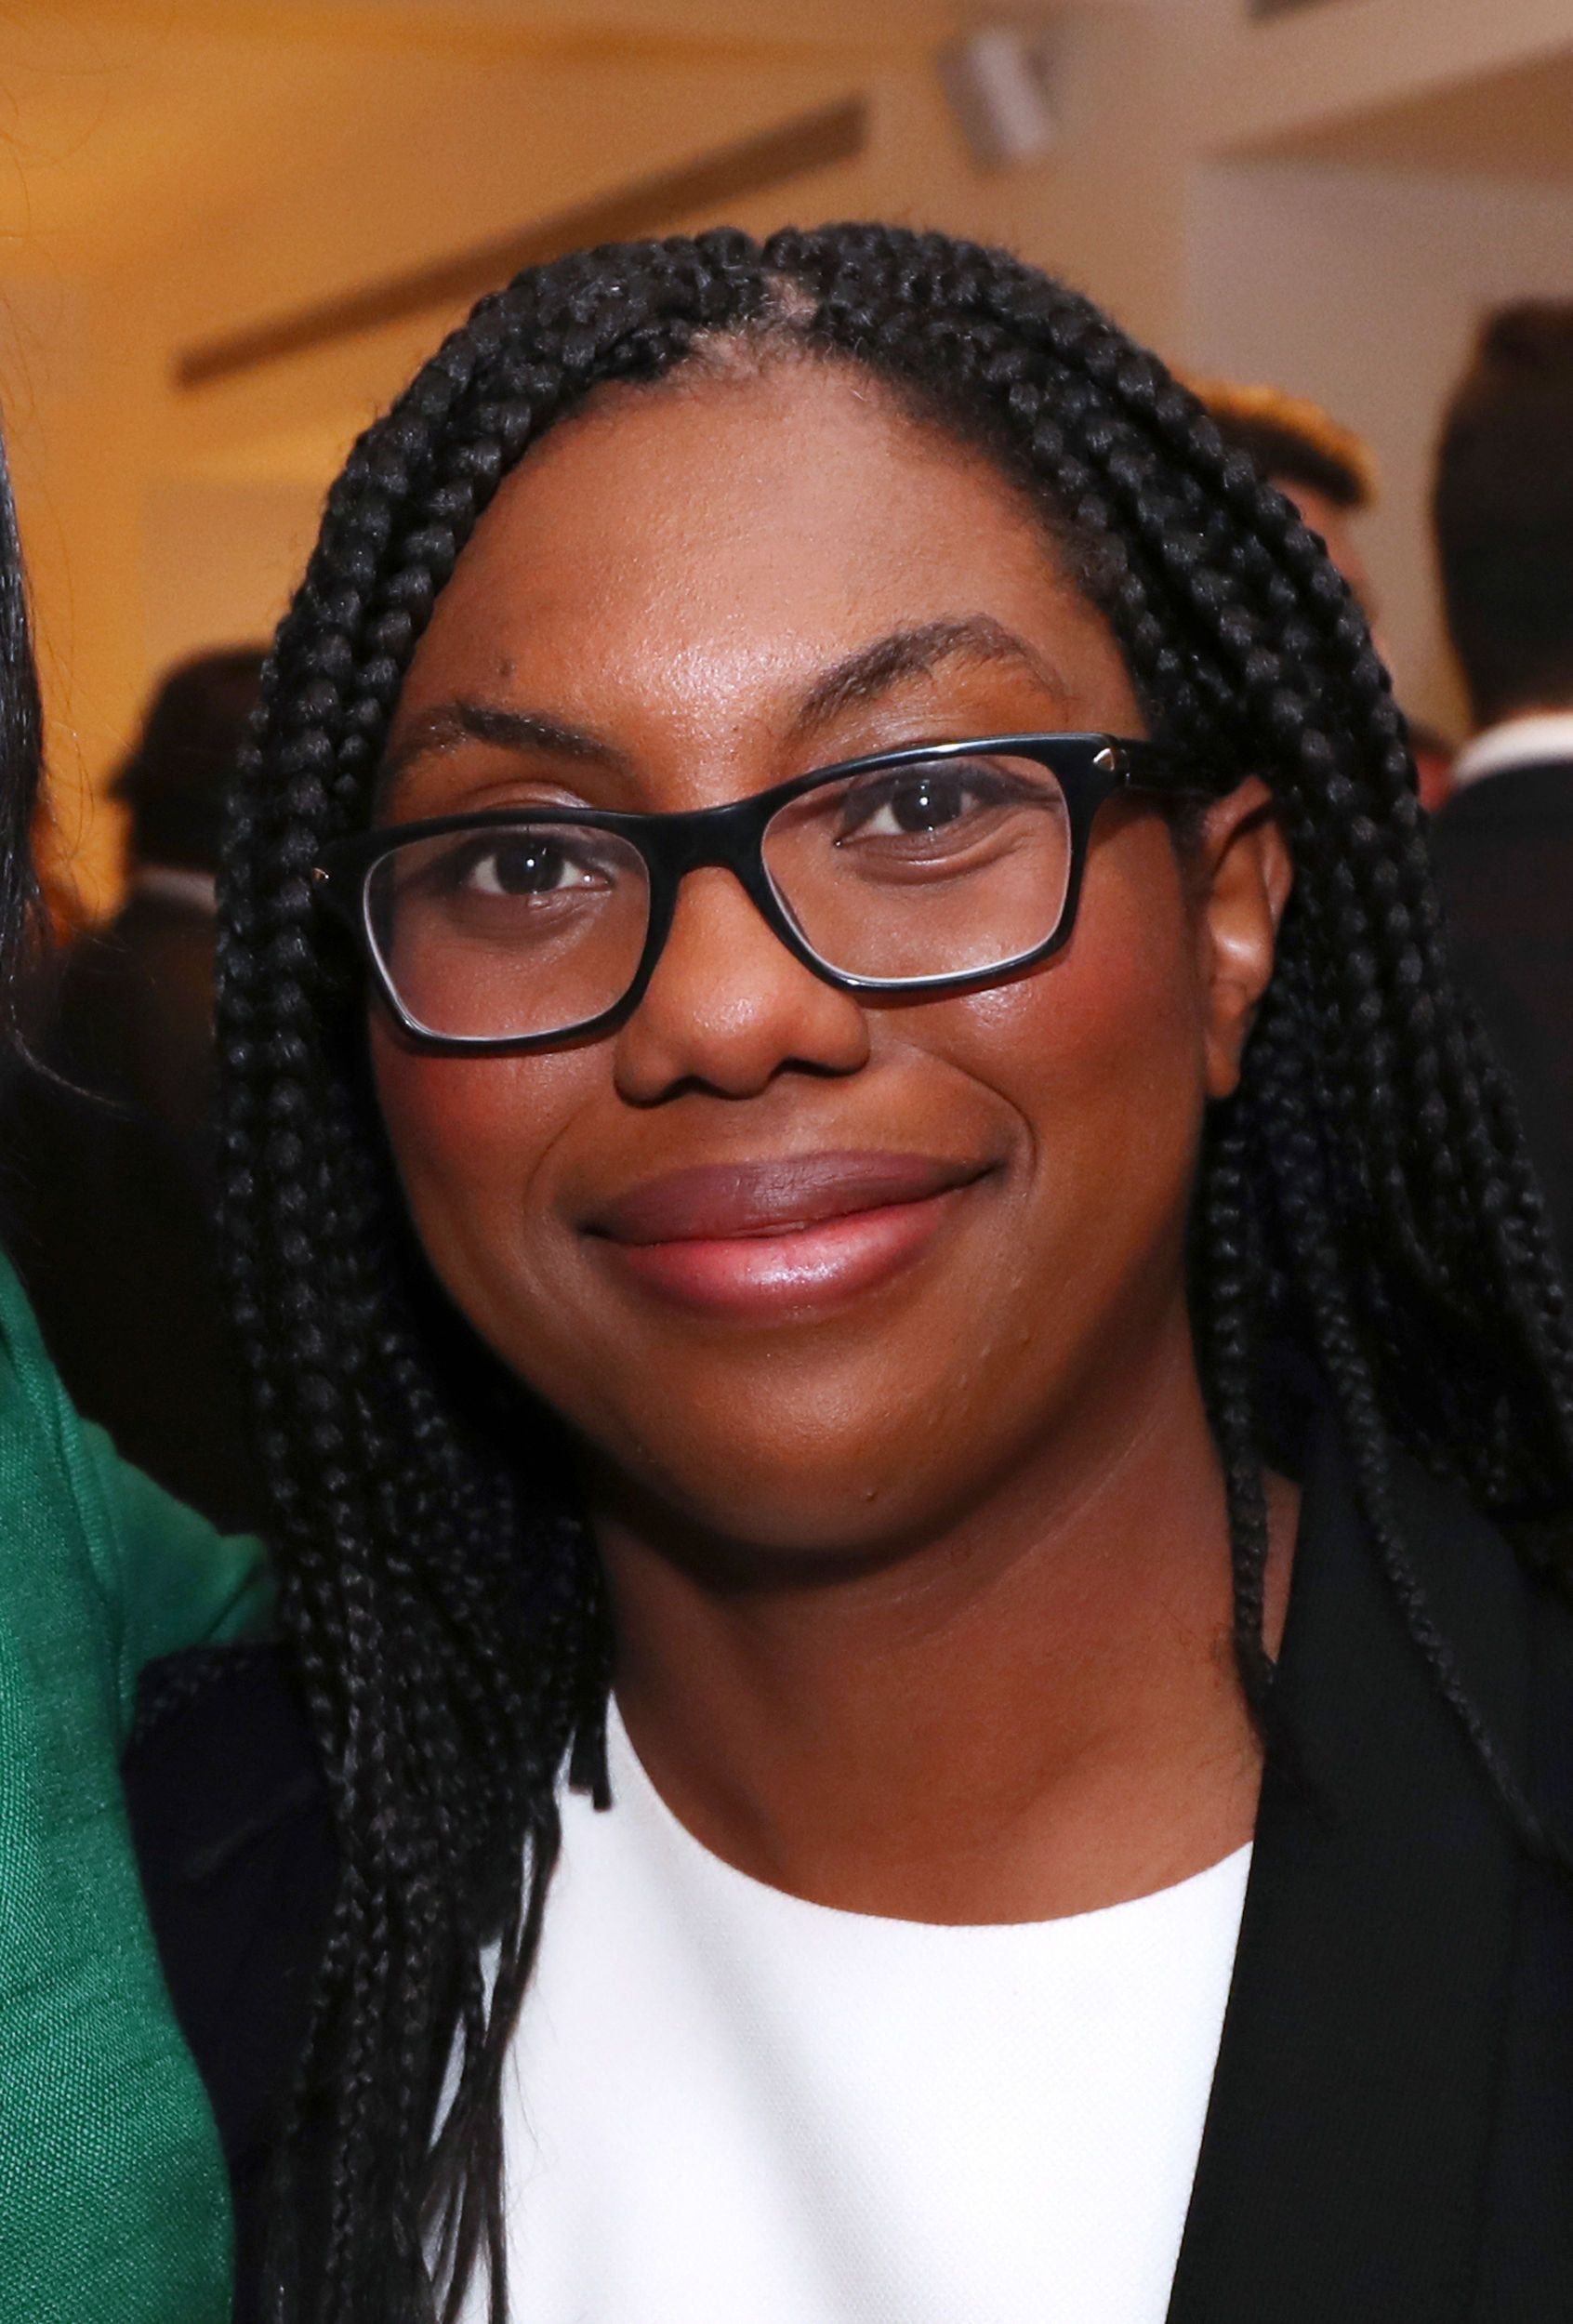 Kemi Badenoch Tells Tories Not To Get 'All Sweaty' About Theresa May